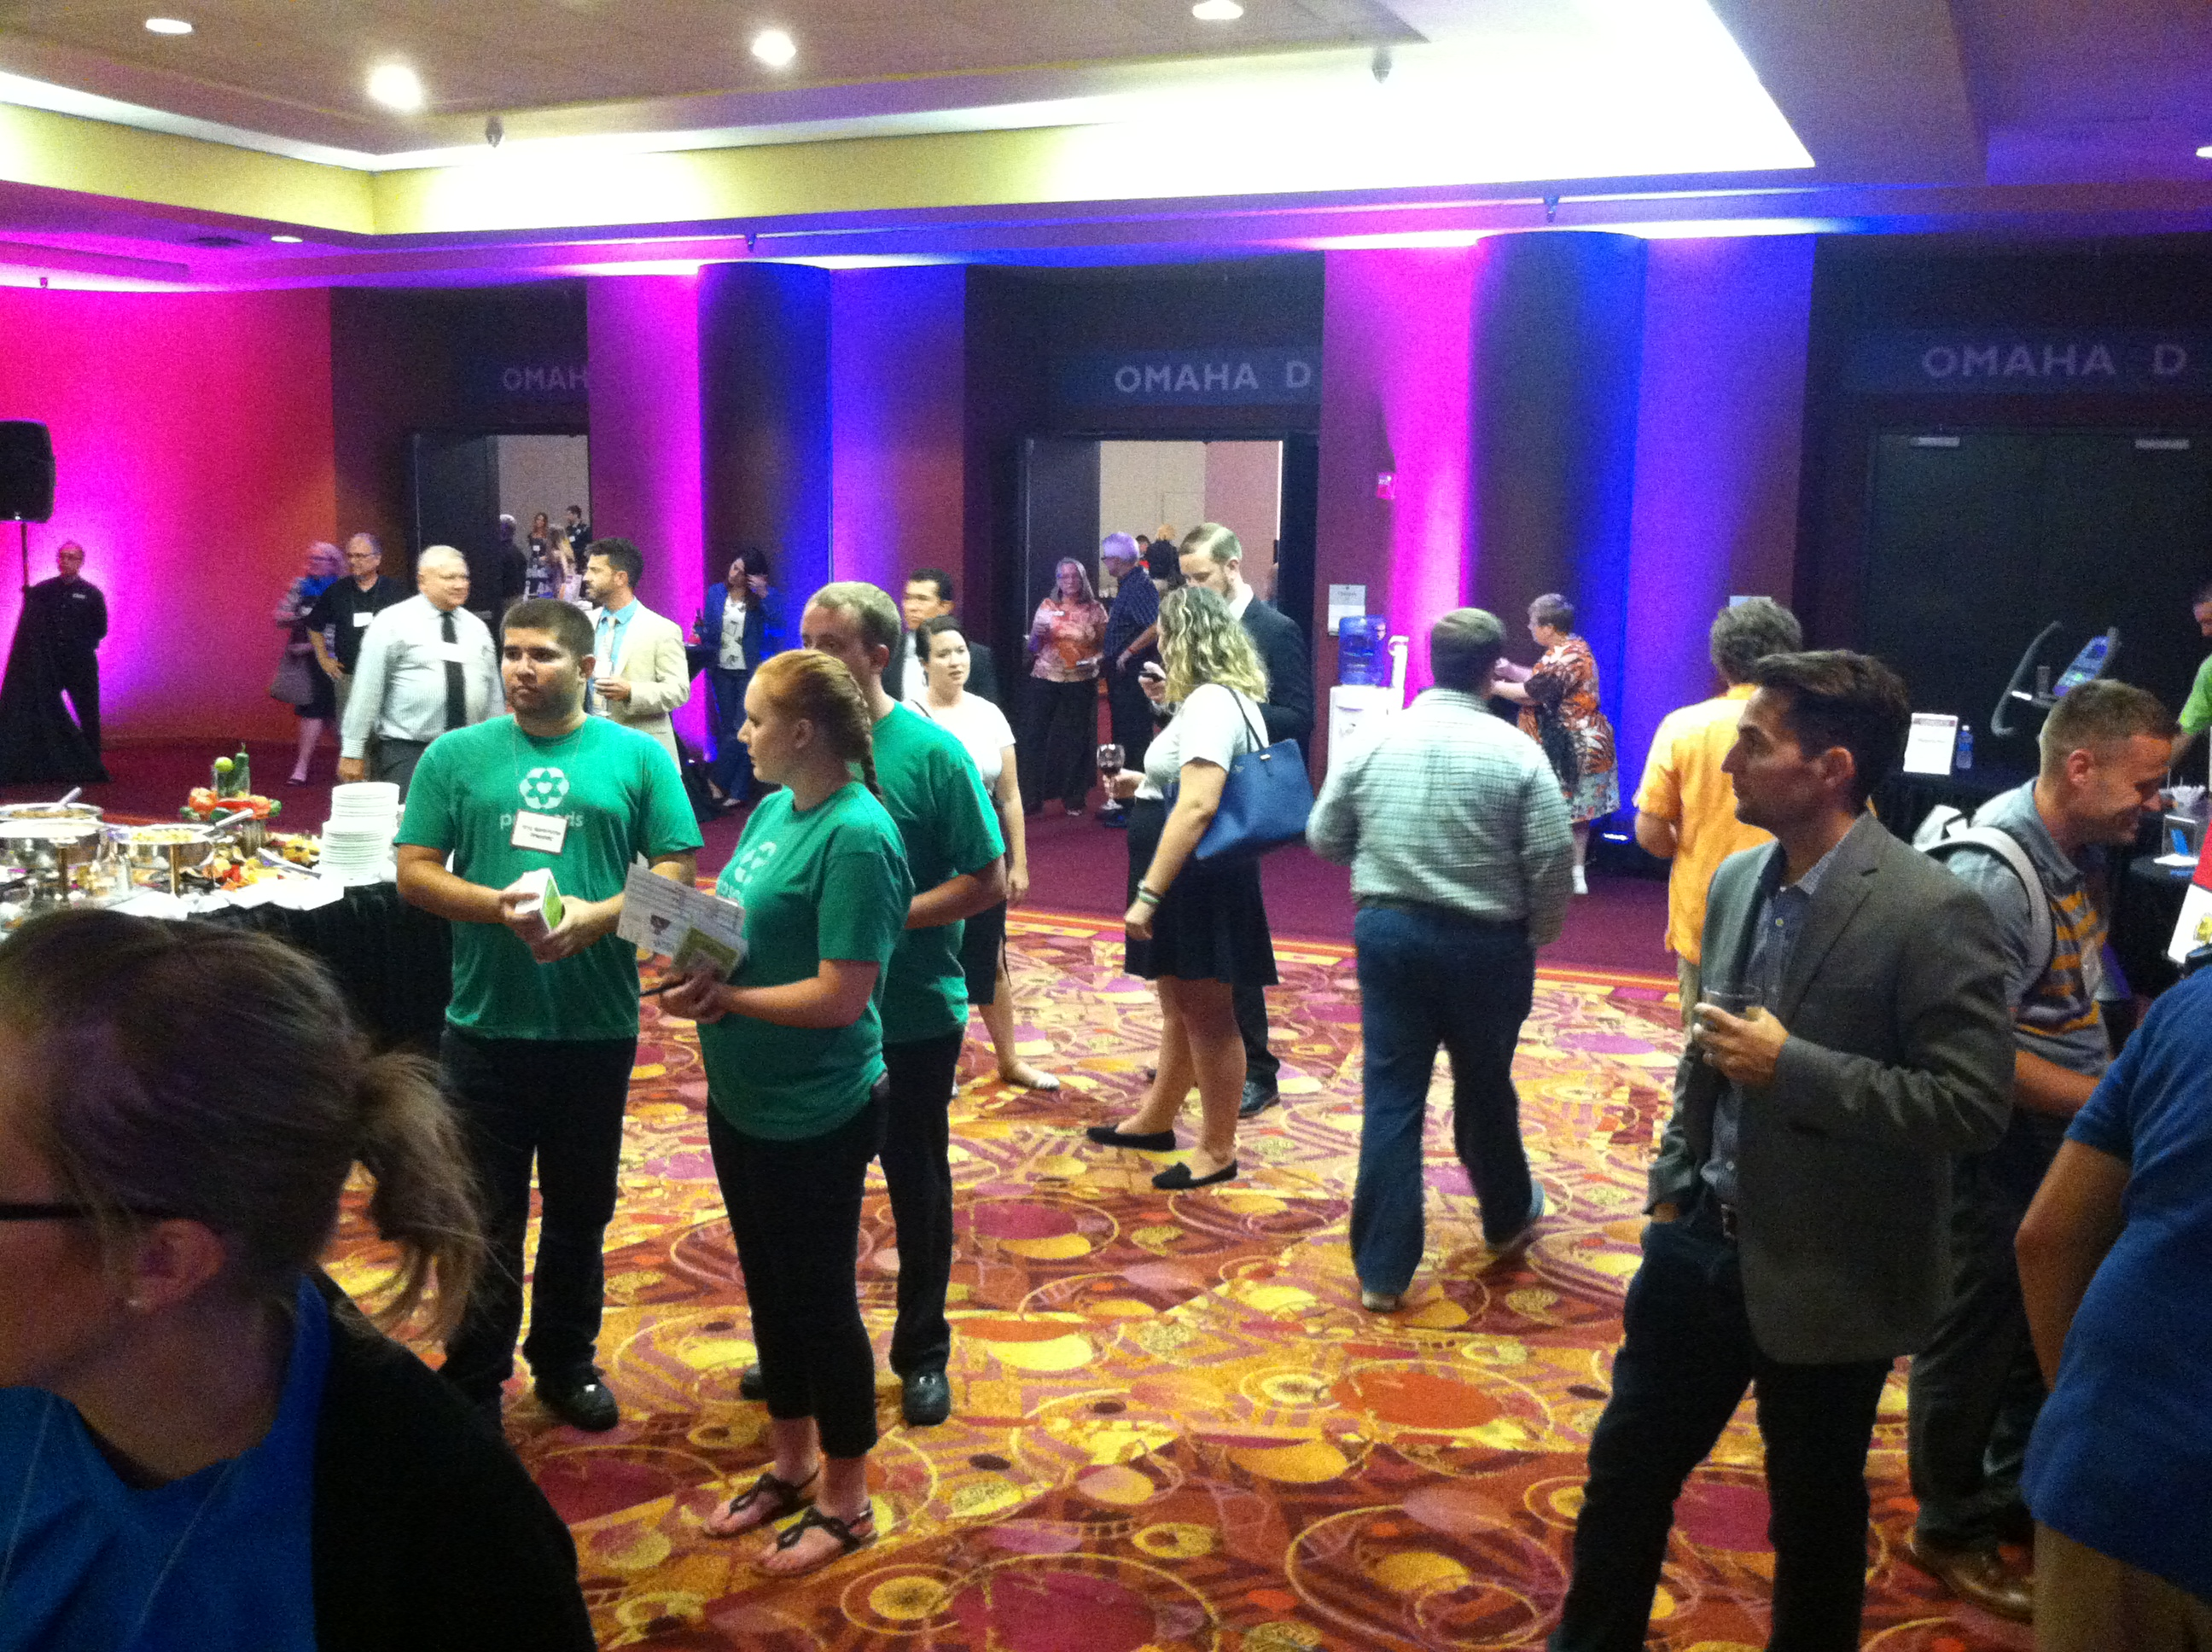 midwest sound and lighting blog archive greater omaha chamber of